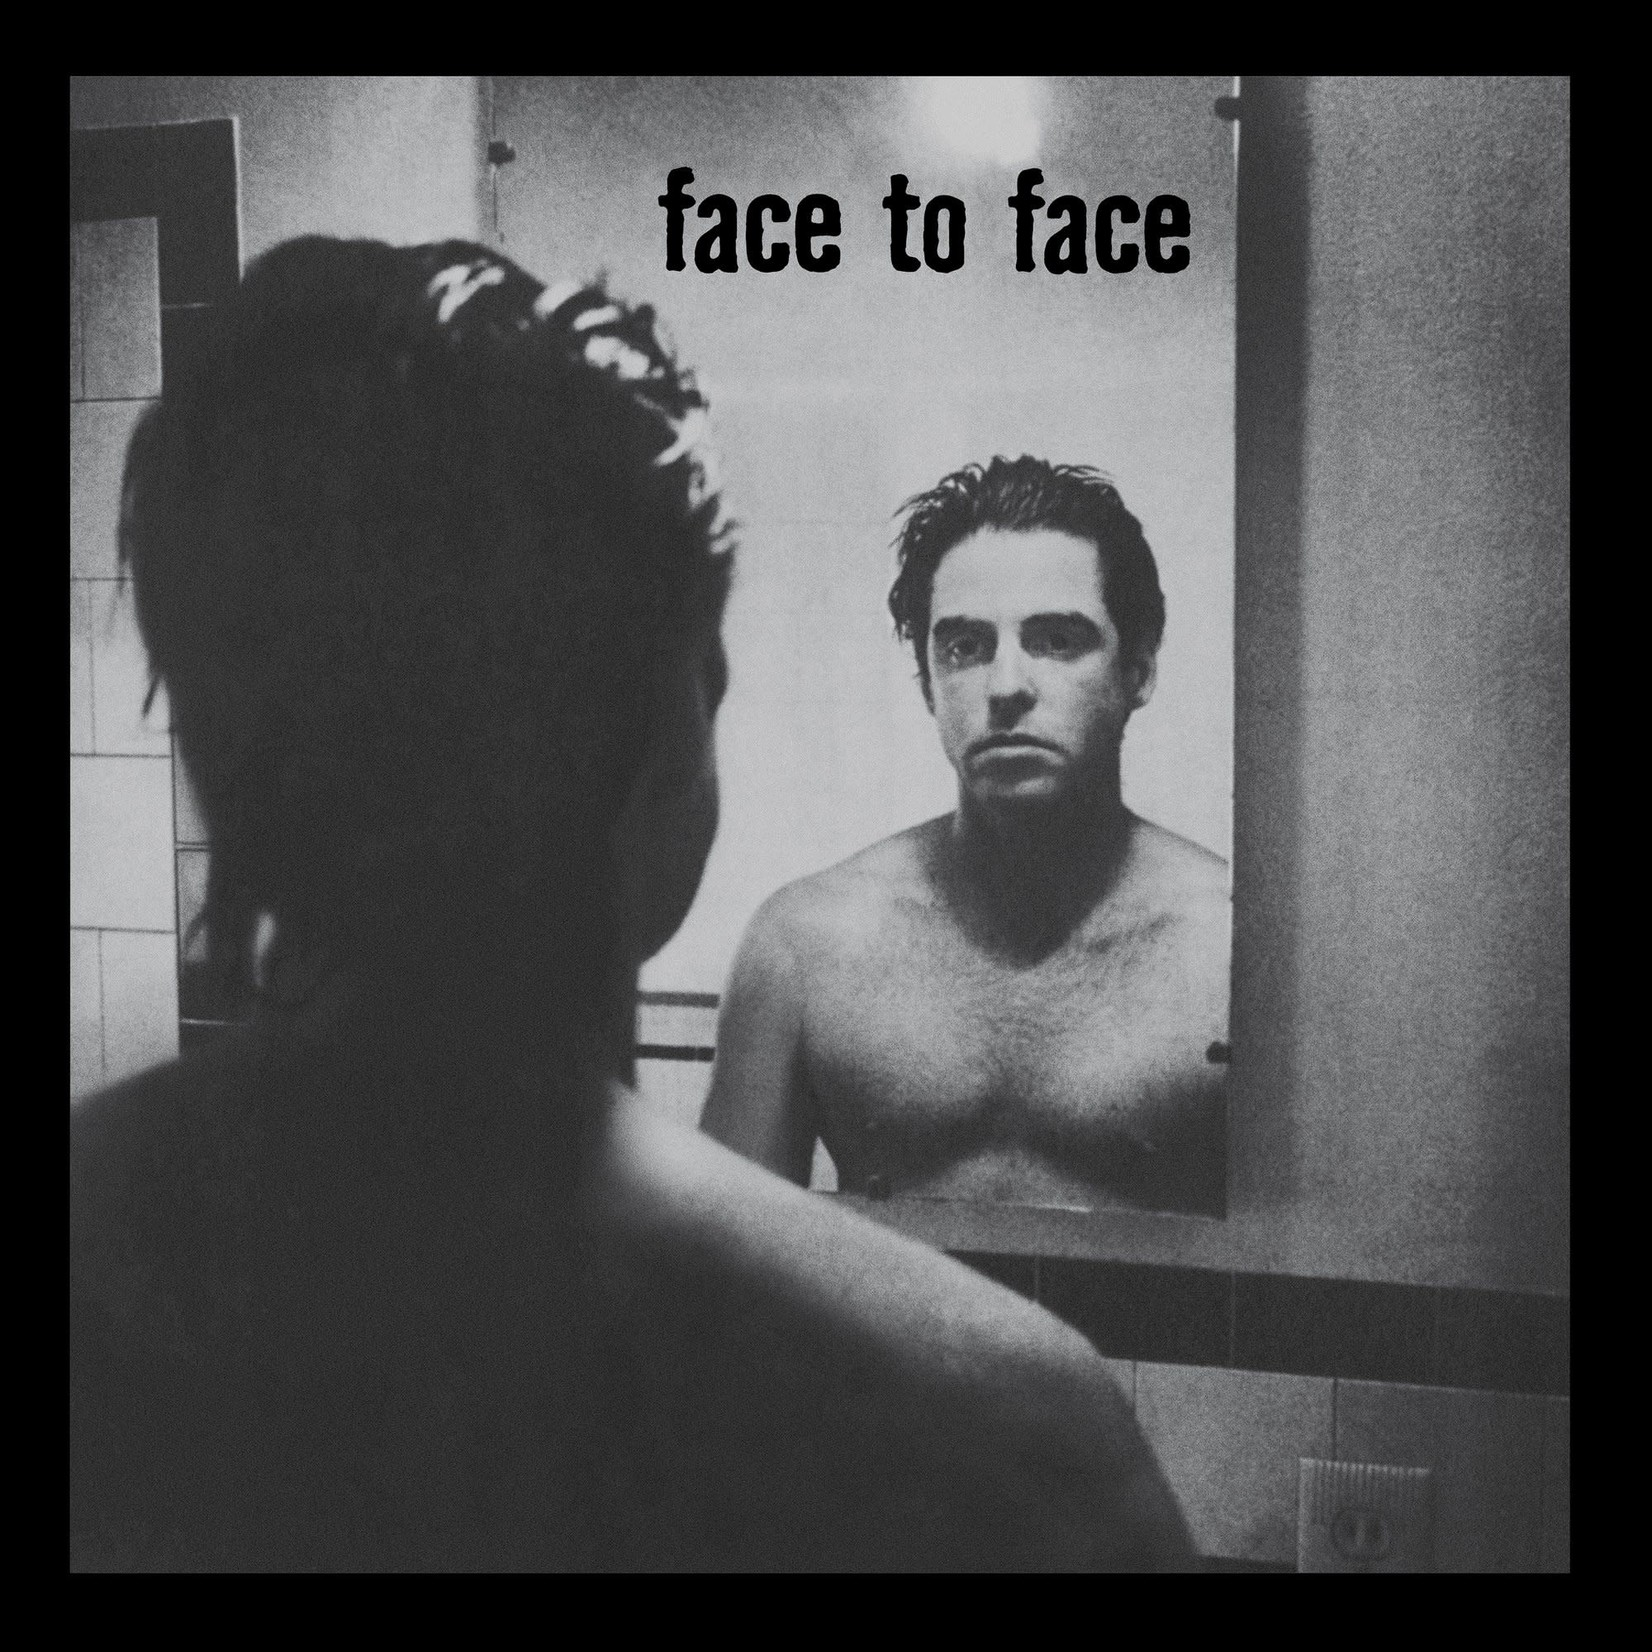 [New] Face To Face: self-titled (2016 remaster, 2 bonus track)